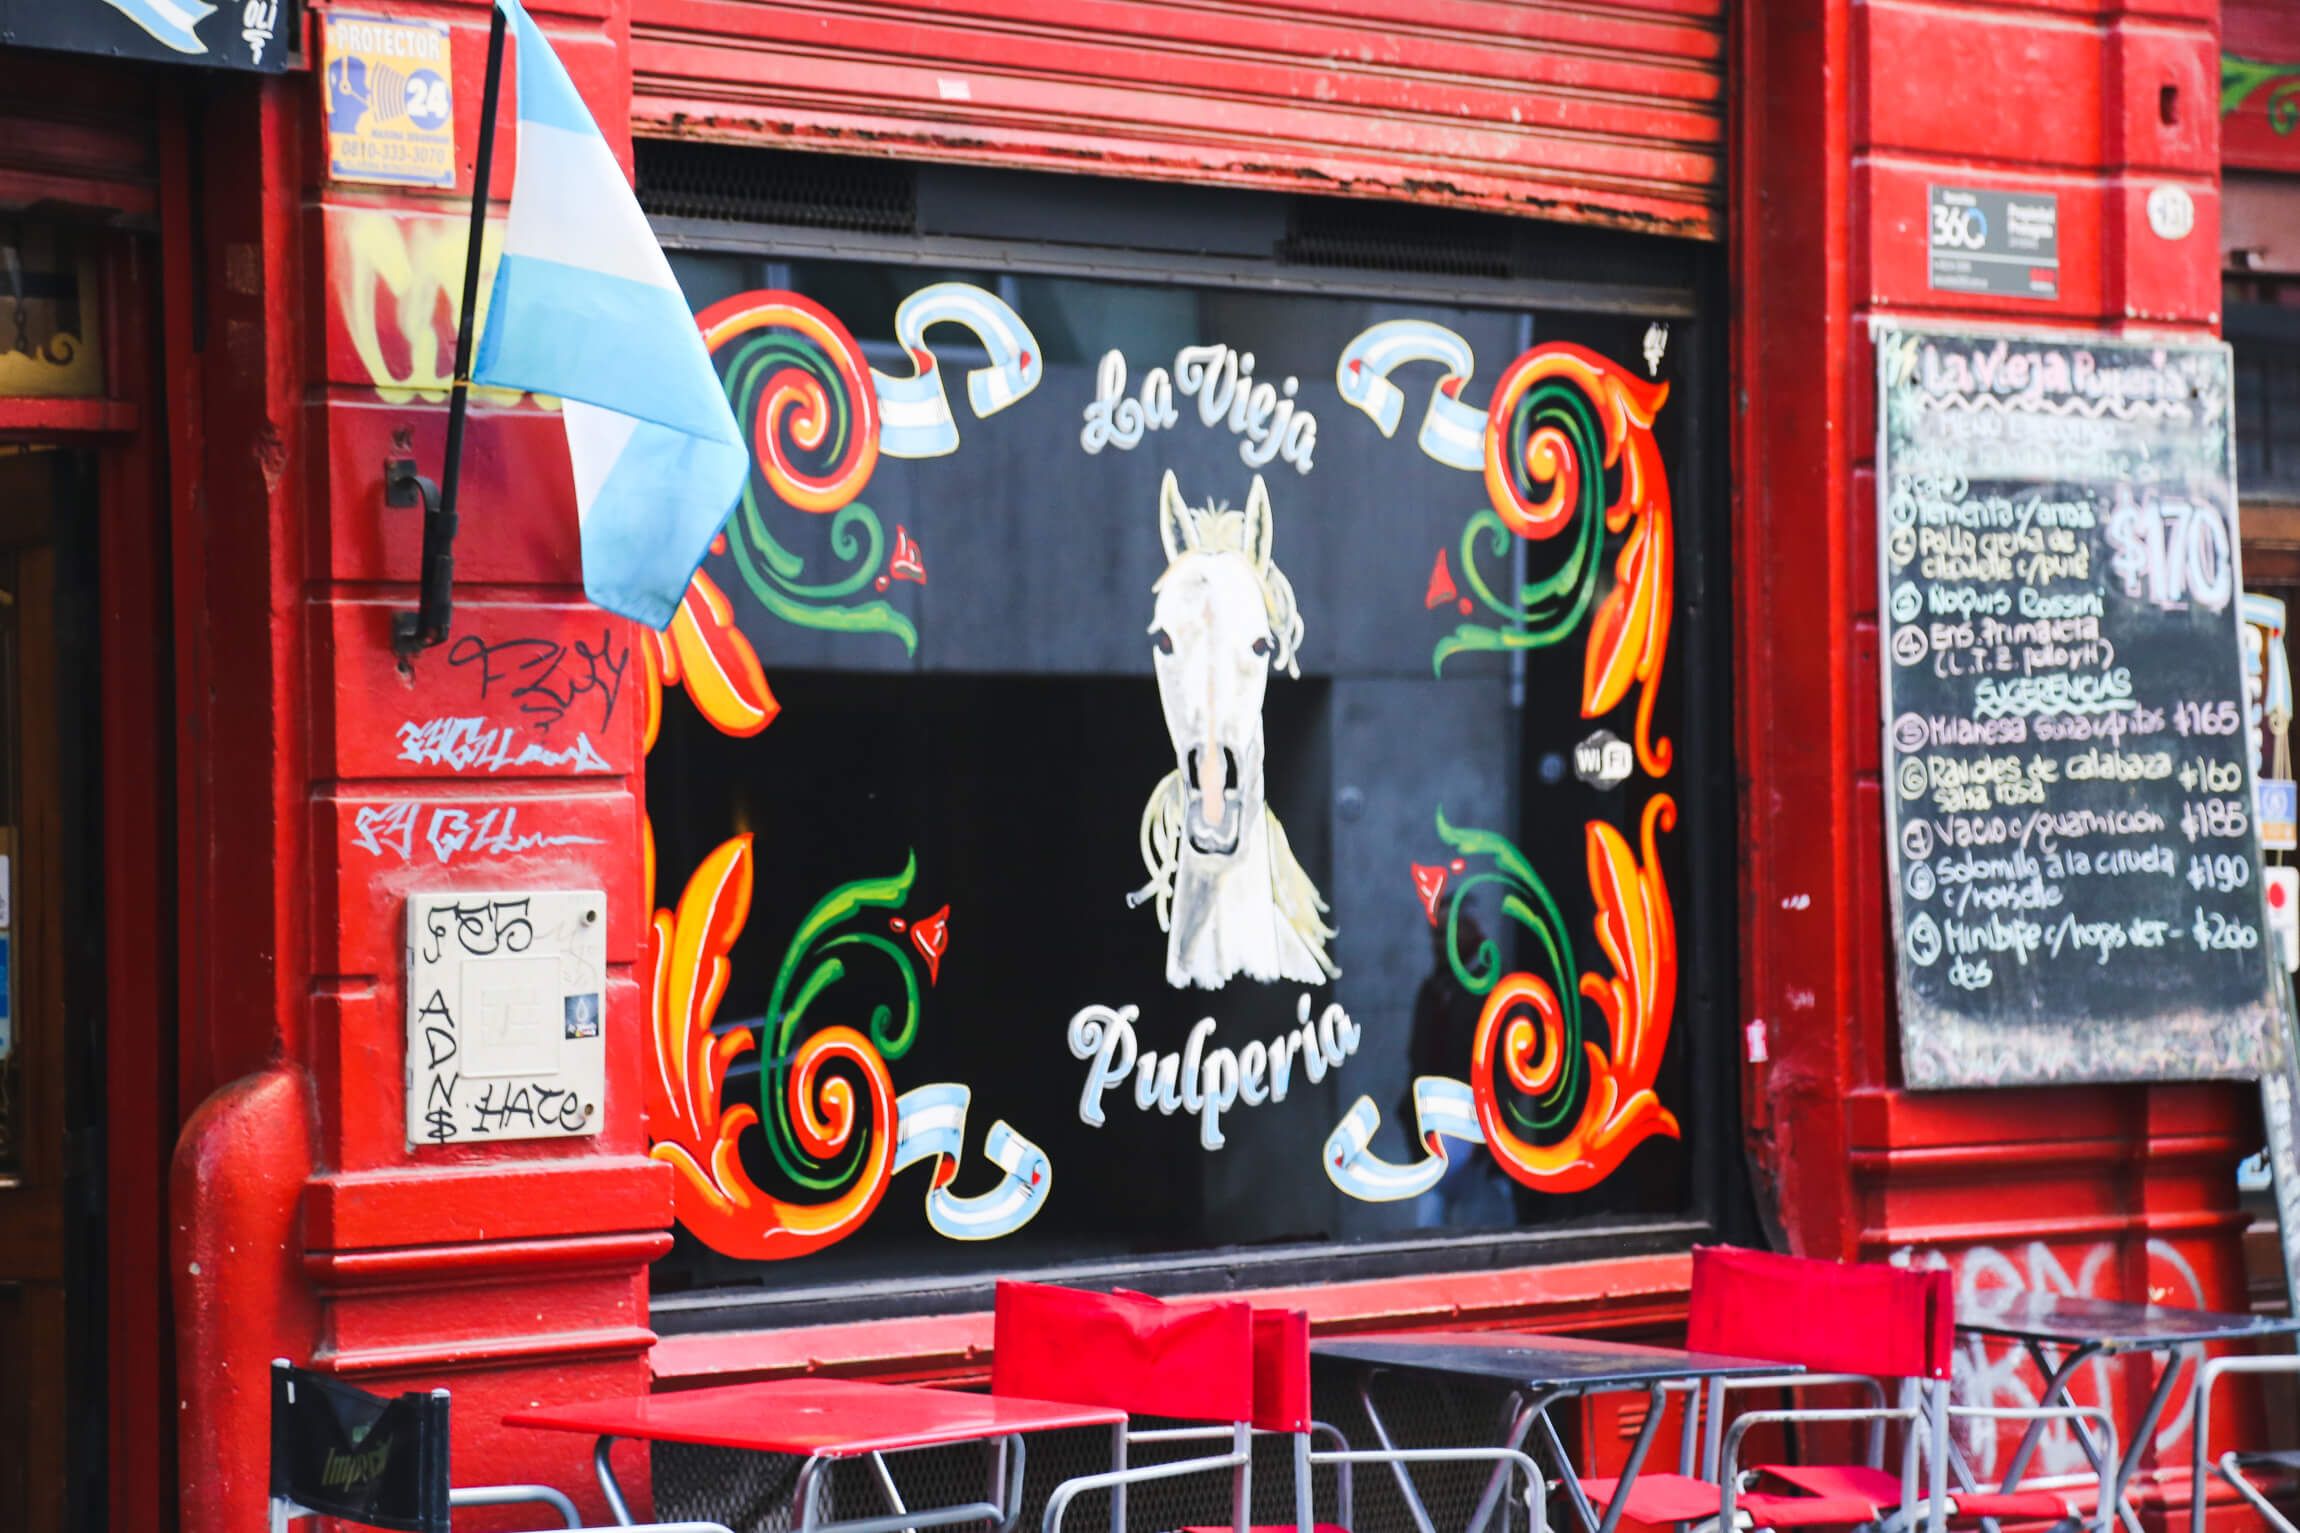 Visit Buenos Aires to see this red restaurant facade decorated with Argentine fileteado paint